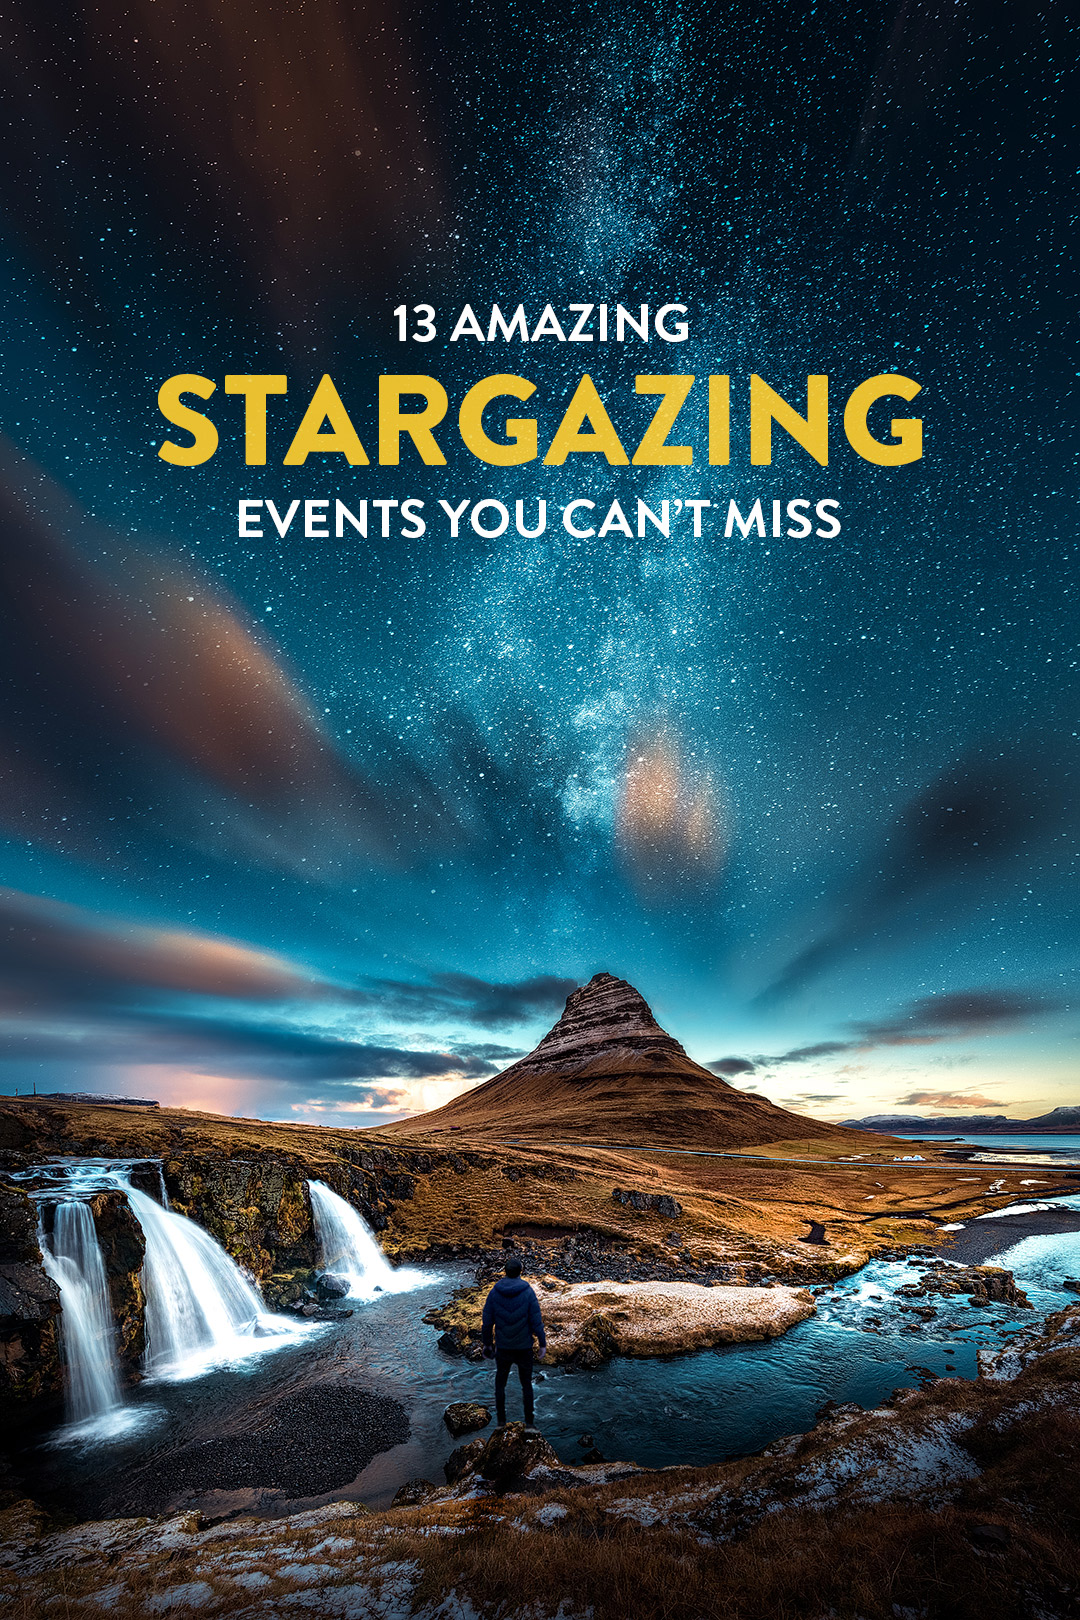 13 Amazing Stargazing Events You Won't Want to Miss in 2019